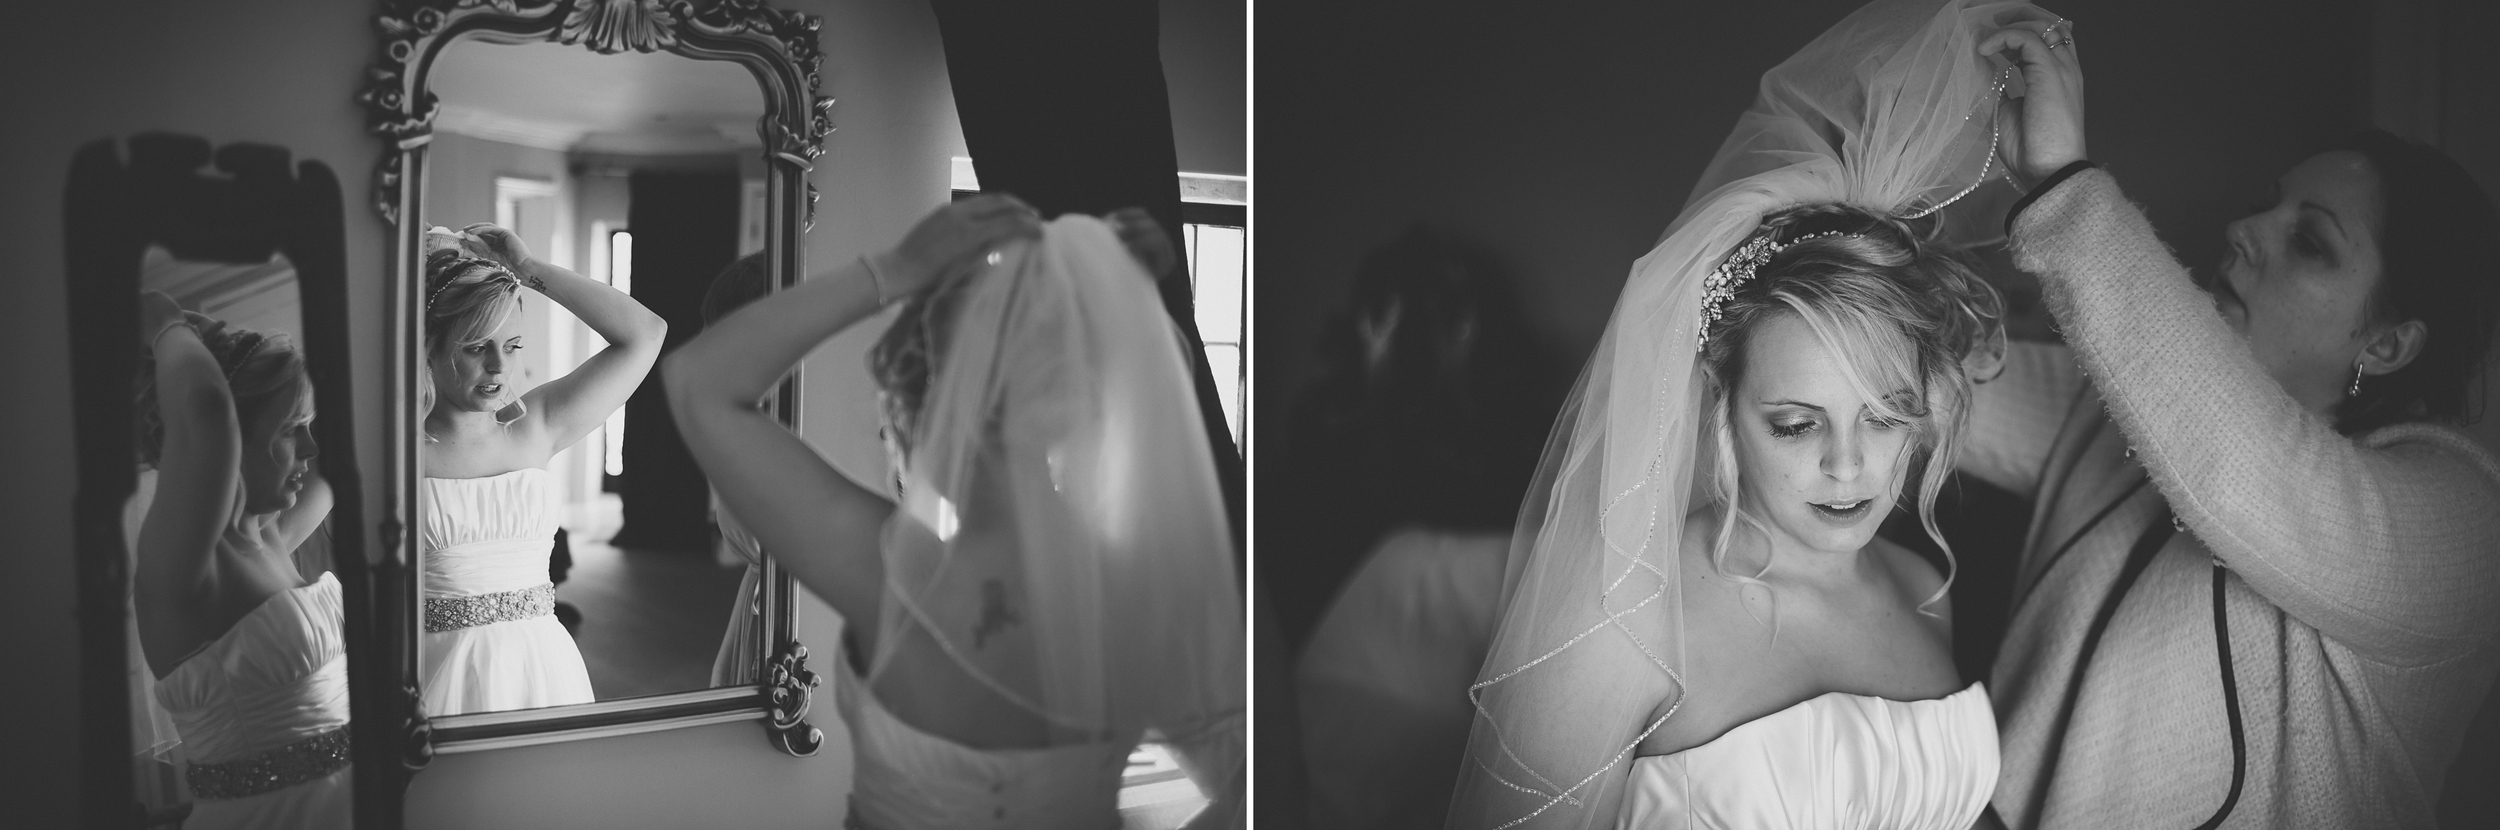 black and white documentary wedding photography of bride getting ready